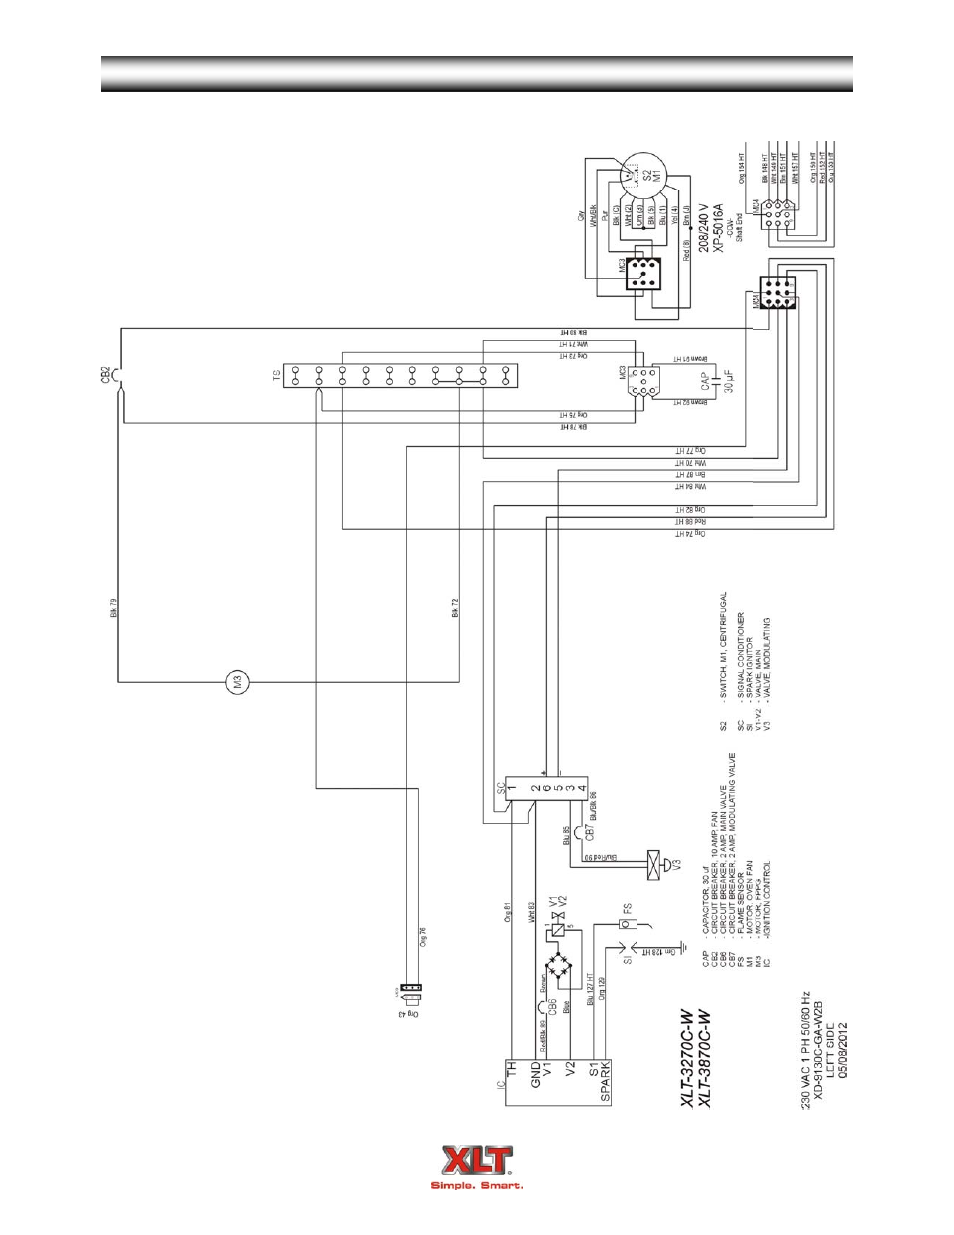 Contro Gas Oven Wiring Diagram Simple Options Robert S Schematic World Xlt Xd 9006a Version C Avi Appliance Connection